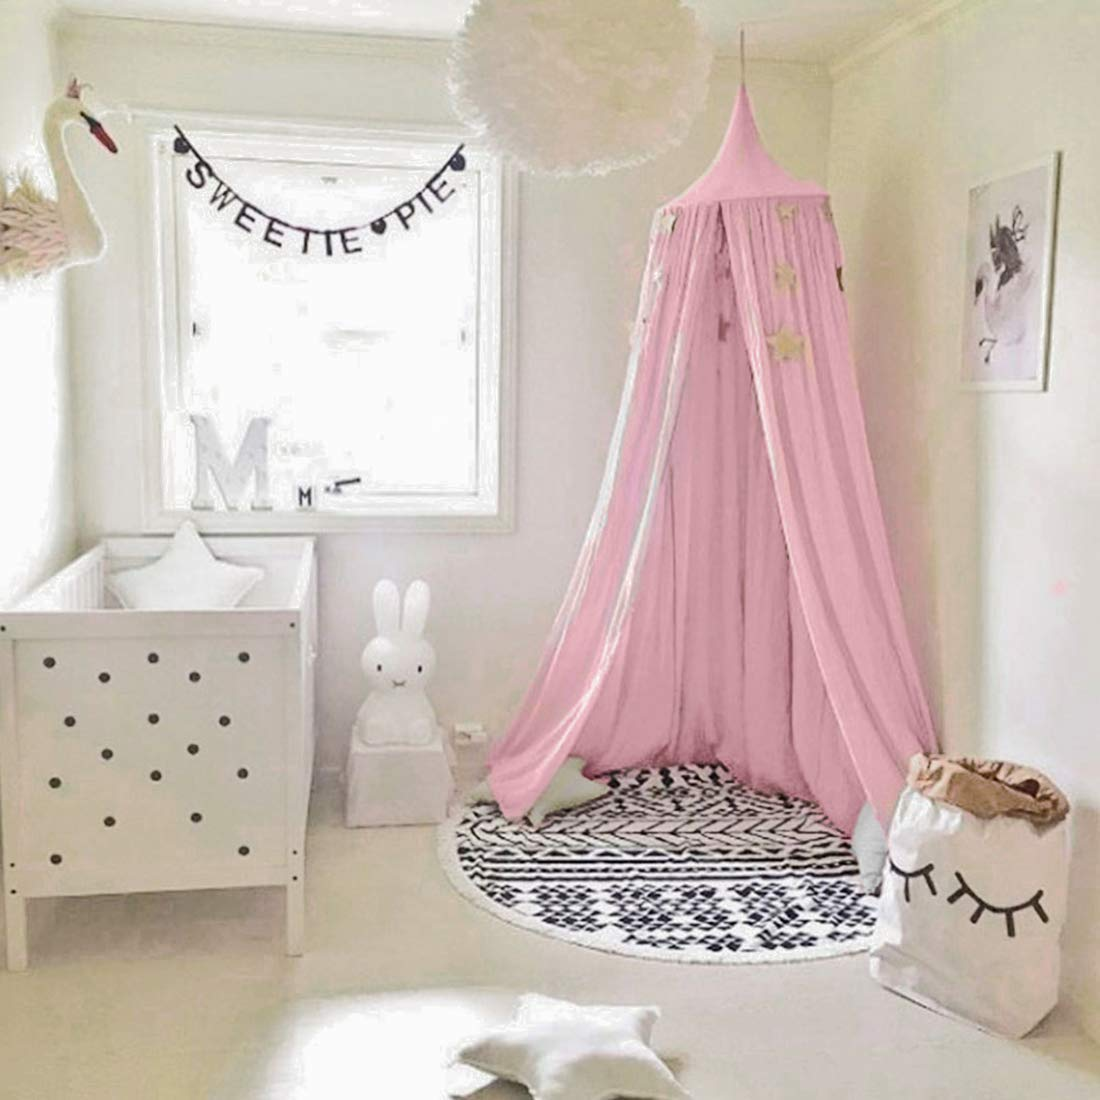 Bed Canopy for Children Cotton Mosqutio Net Hanging Curtain Baby Indoor Outdoor Play Reading & Princess Bed Canopy: Amazon.co.uk